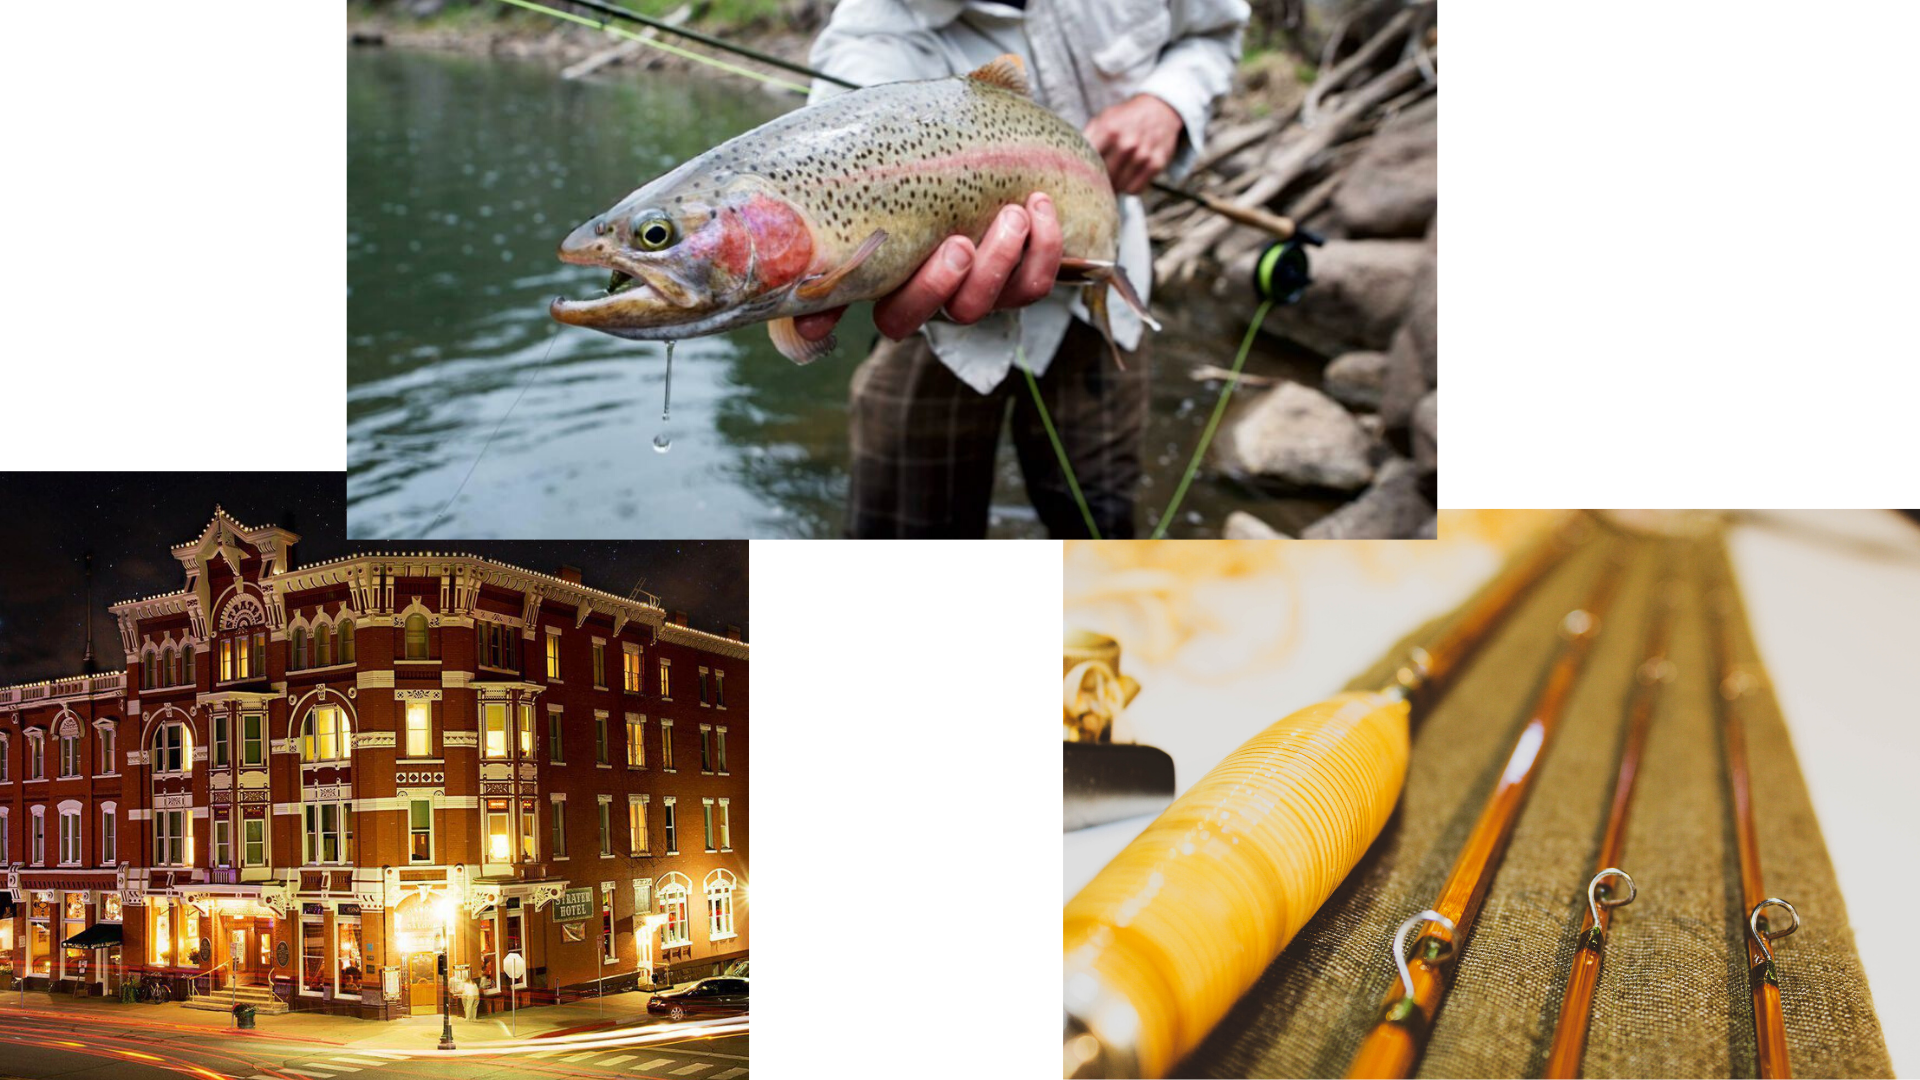 Bamboo Rod Fly Fishing Dining And Hotel Four Corners Chapter Sci